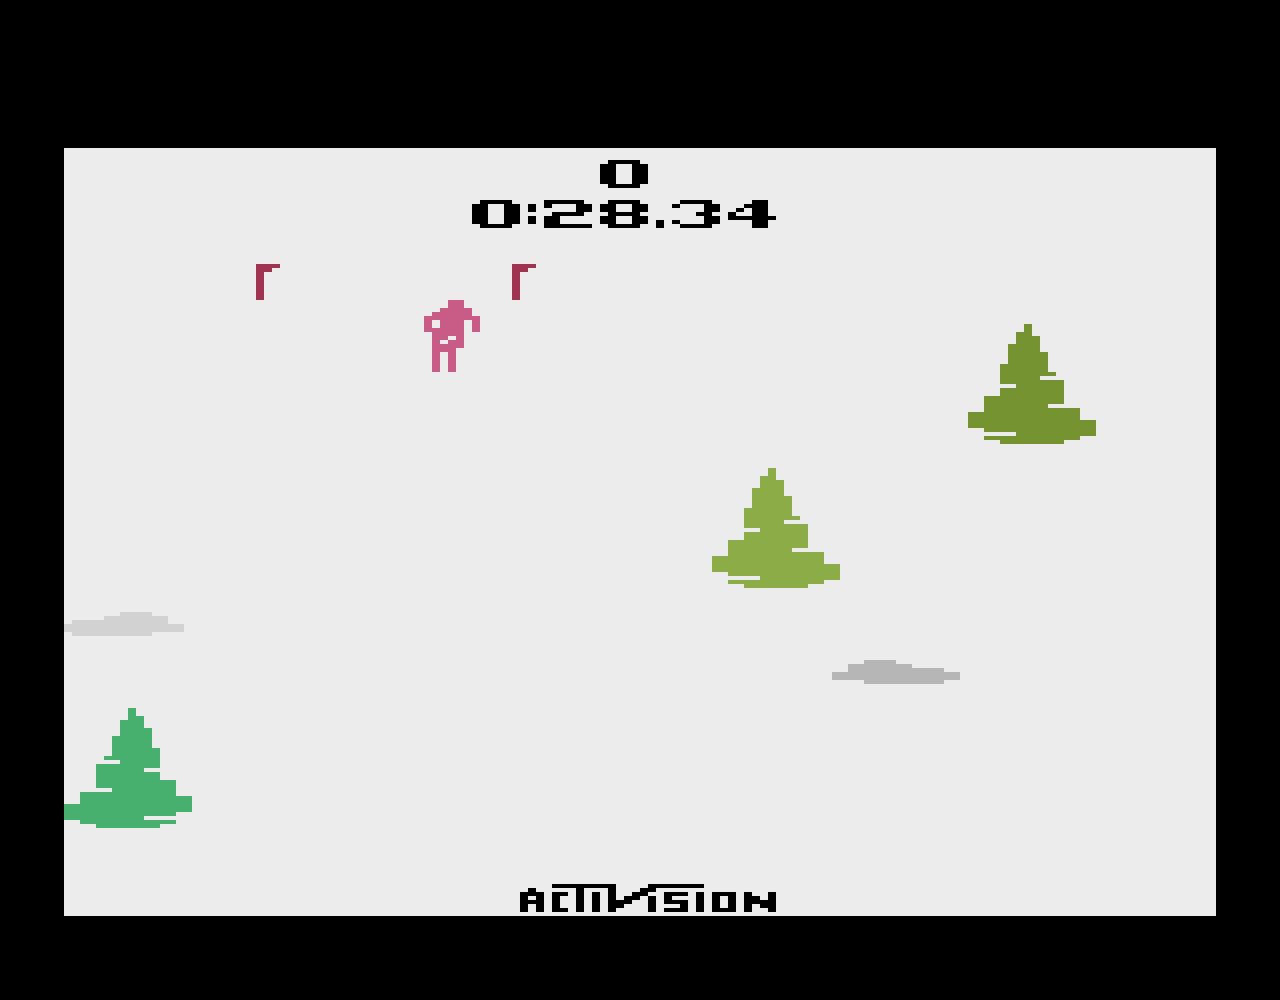 Skiing: Game 3 time of 0:00:28.34